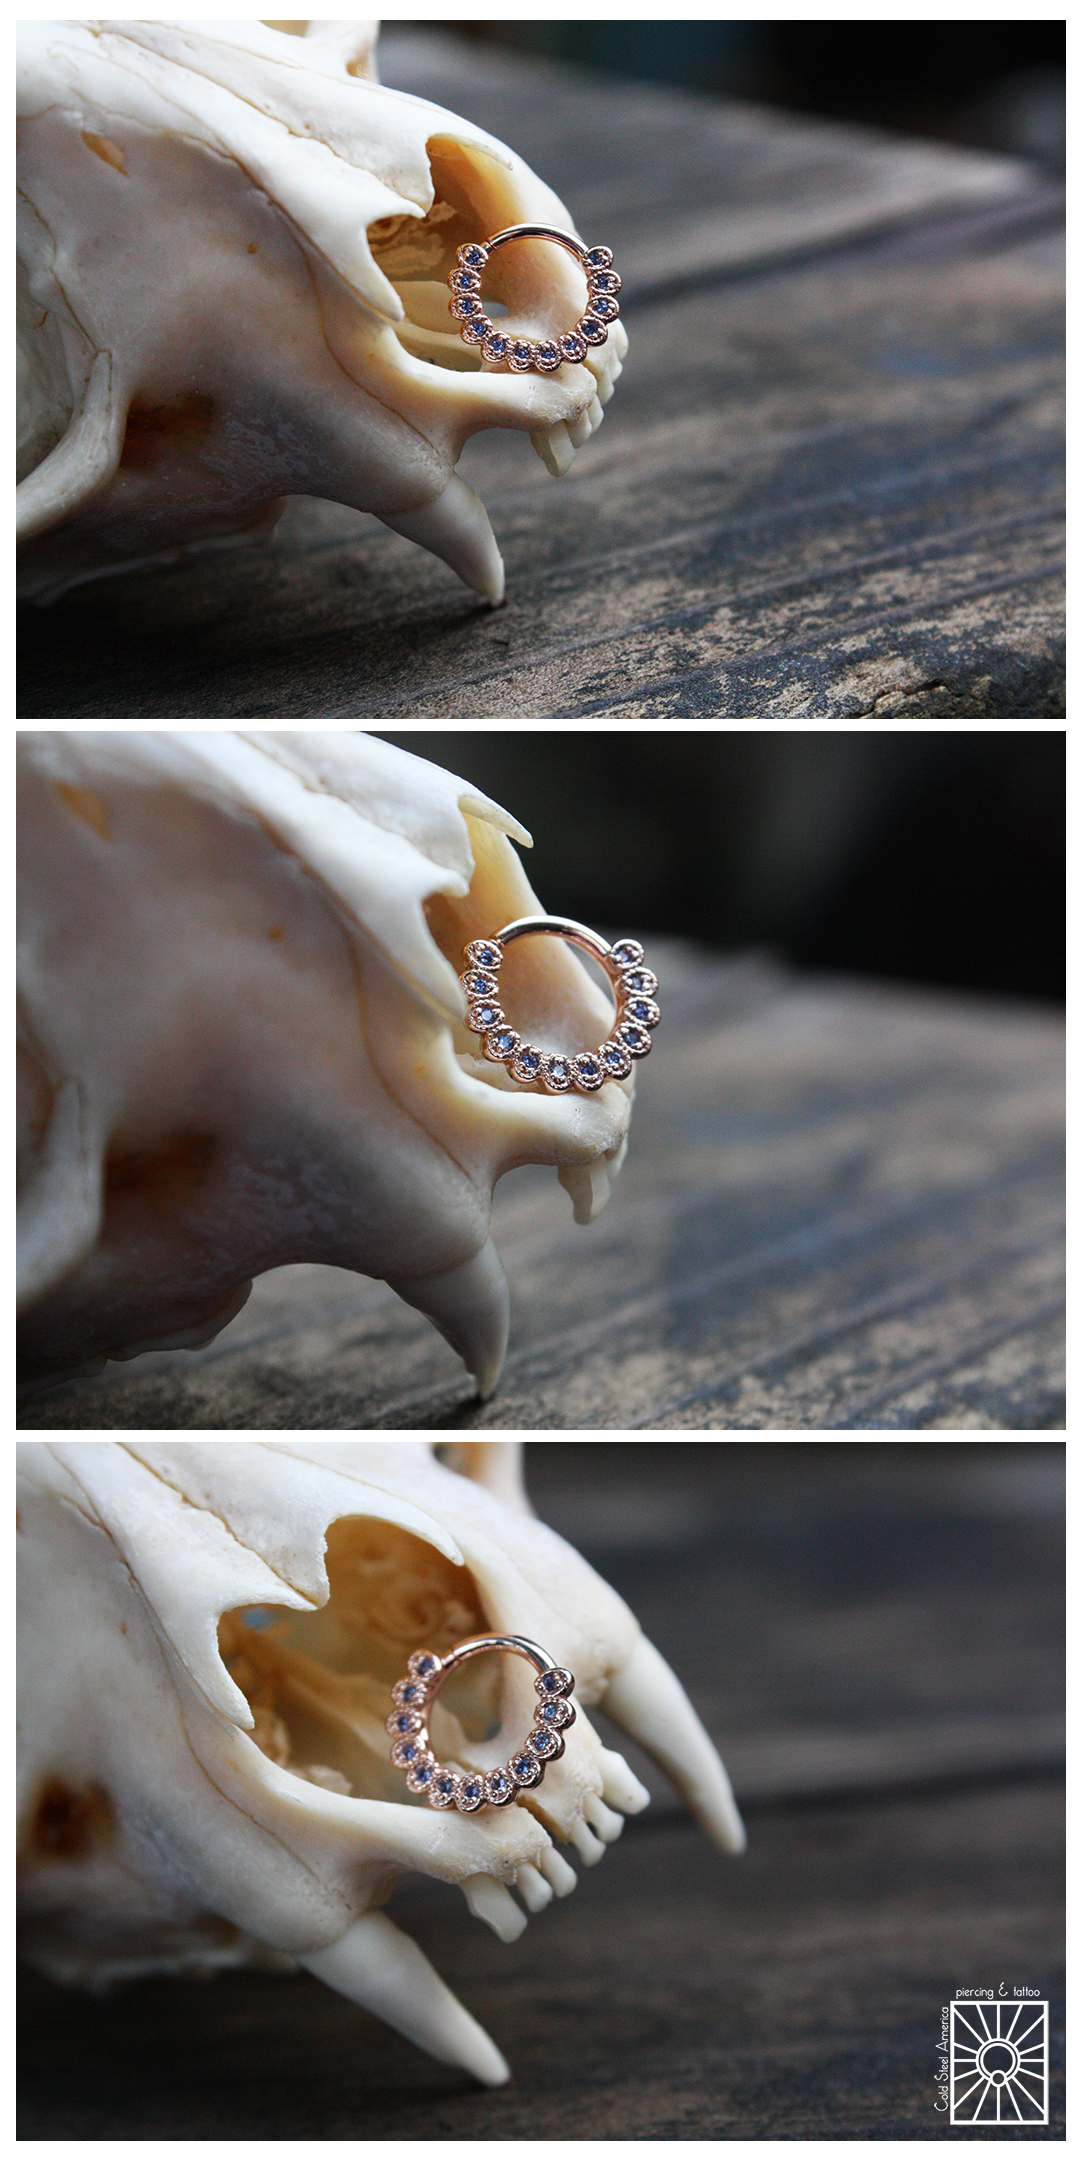 """Solid 14 karat Rose Gold """"Santa Rosa"""" continuous ring with genuine Polar Sapphires from Body Vision Los Angeles."""